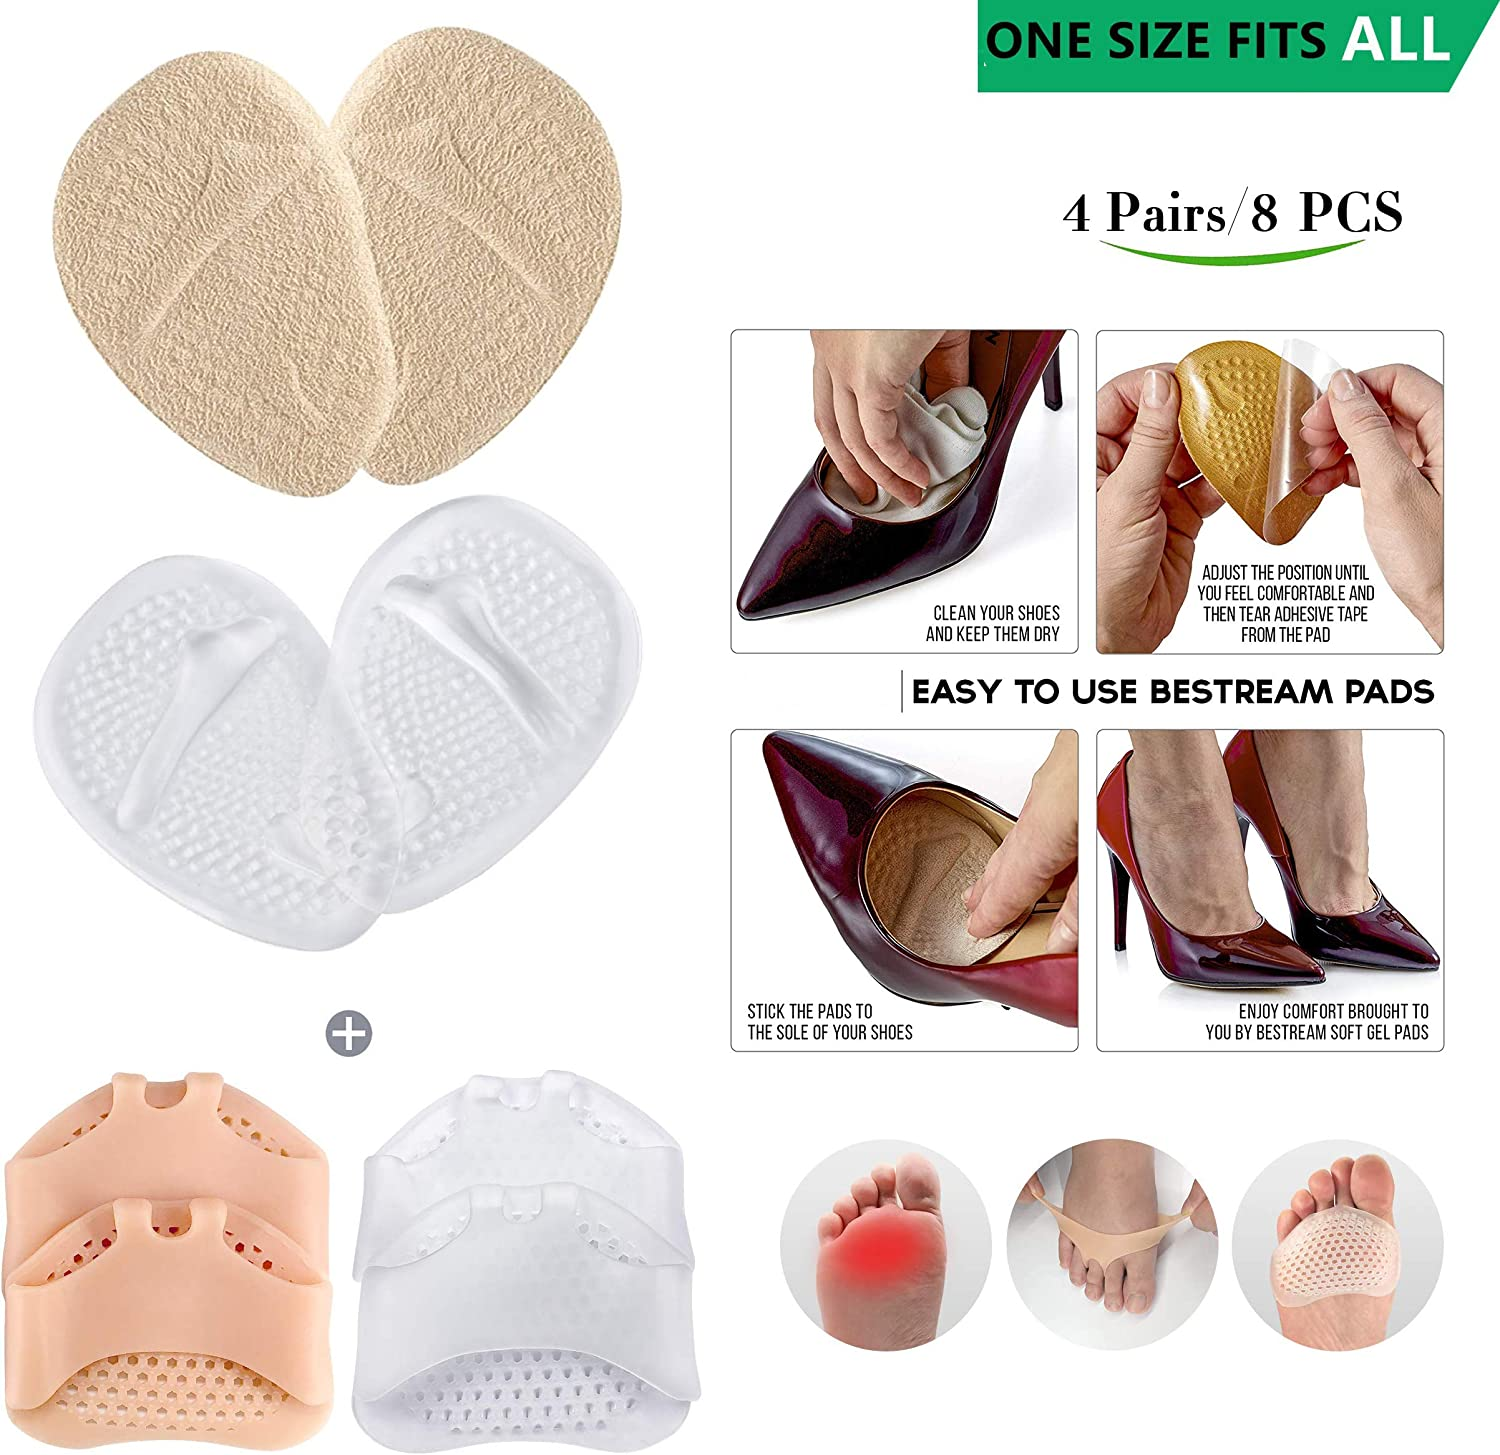 - Metarsal Ball of Foot Pads 4 Pair Foot Pads /– 8PCS 2 Colors - Dark Beige and Transparent Ball of Foot Cushion All Day Pain Relief and Comfort One Size Fits Shoe Metatarsal Pads for Women /& Men